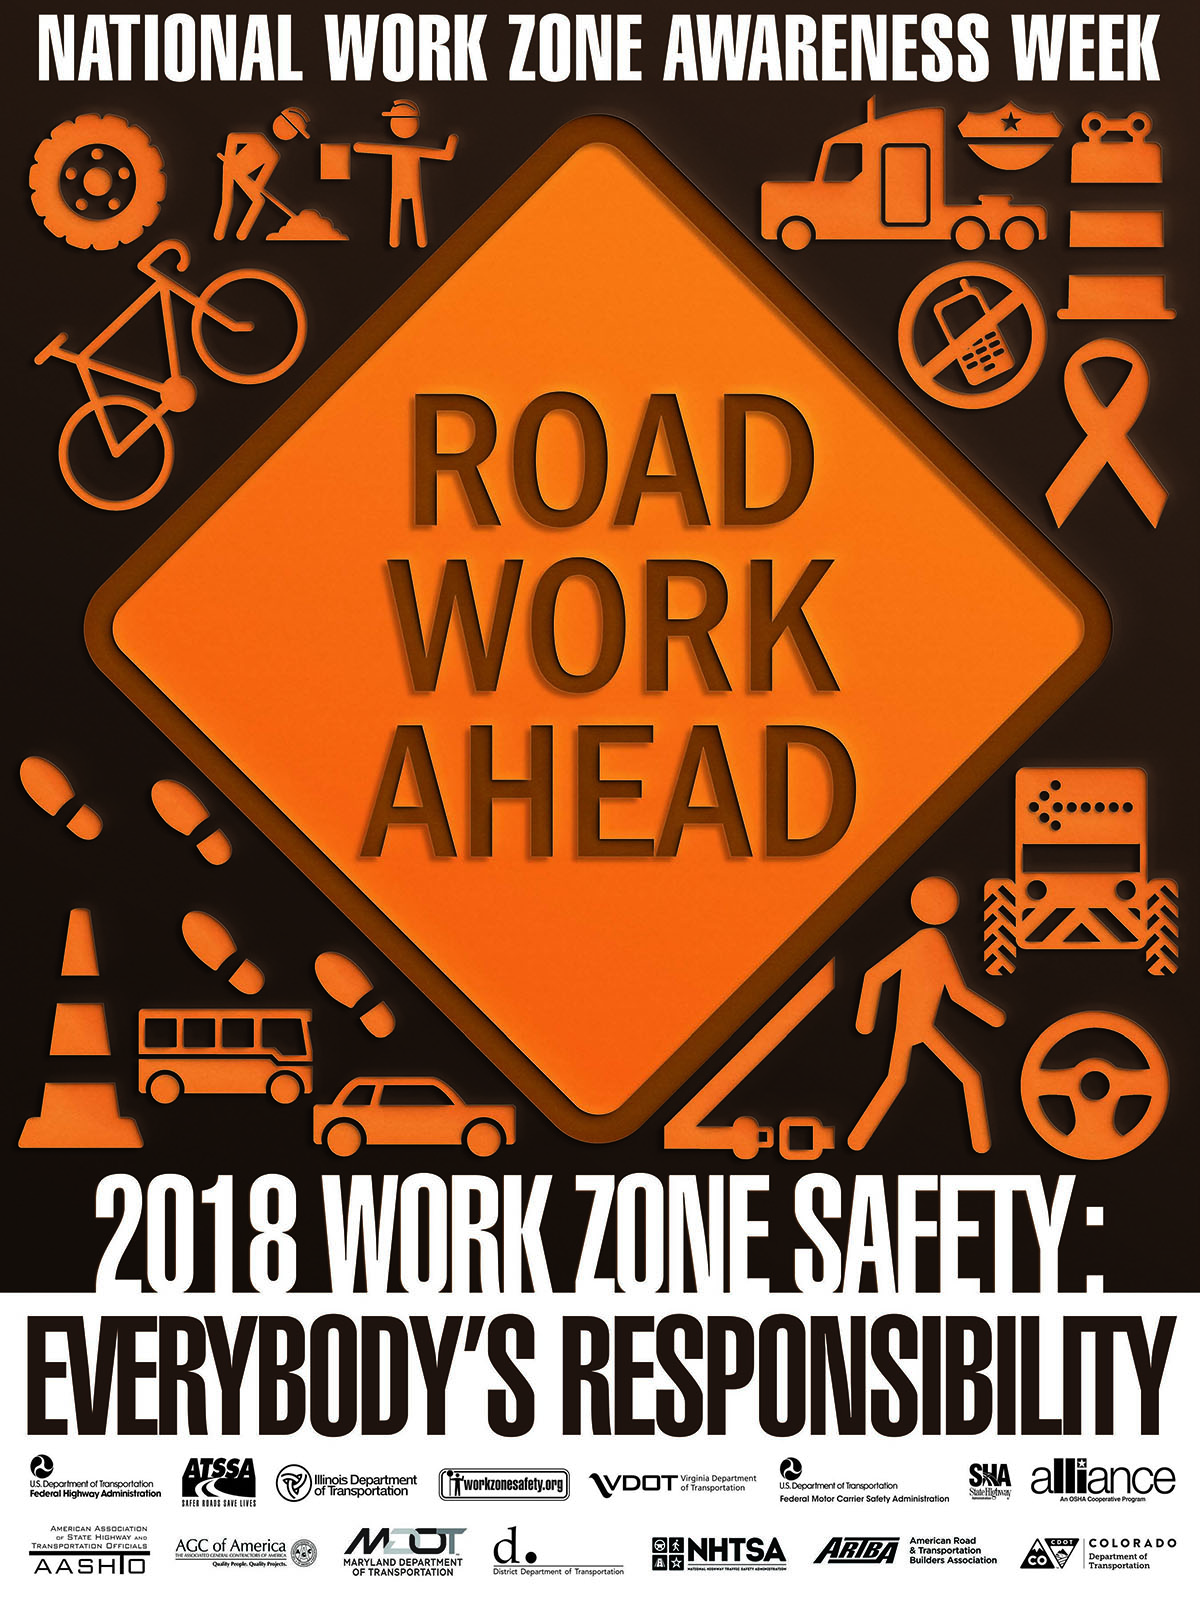 National Work Zone Awareness Poster_w CDOT logo_2018.jpg